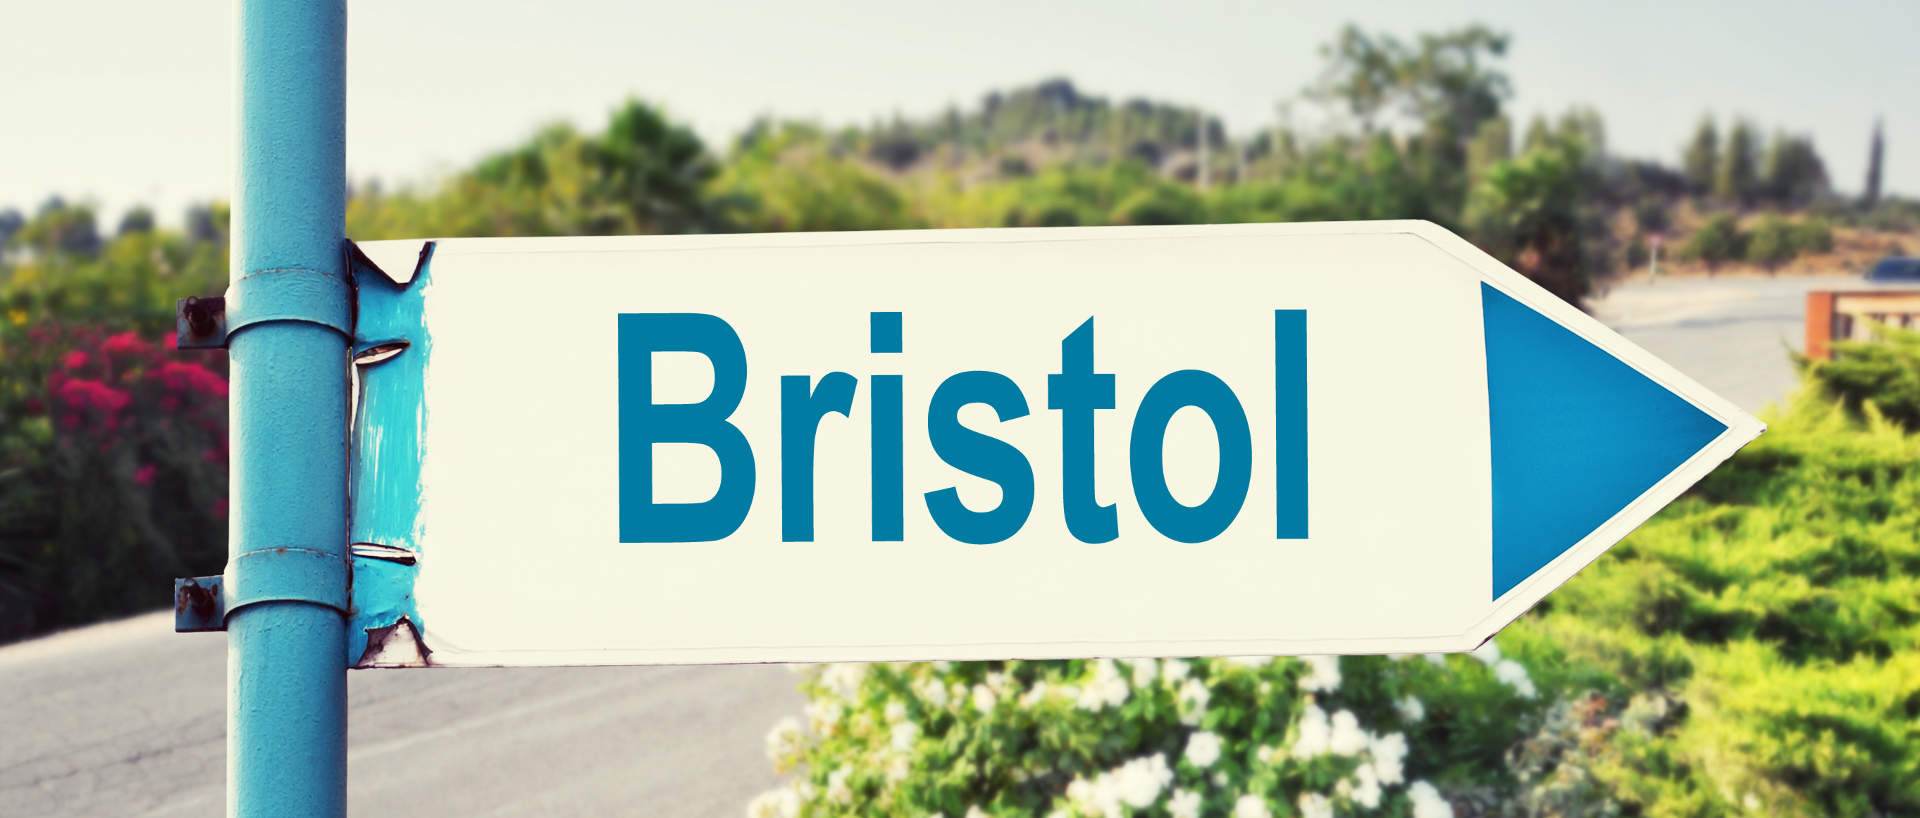 A sign for Bristol